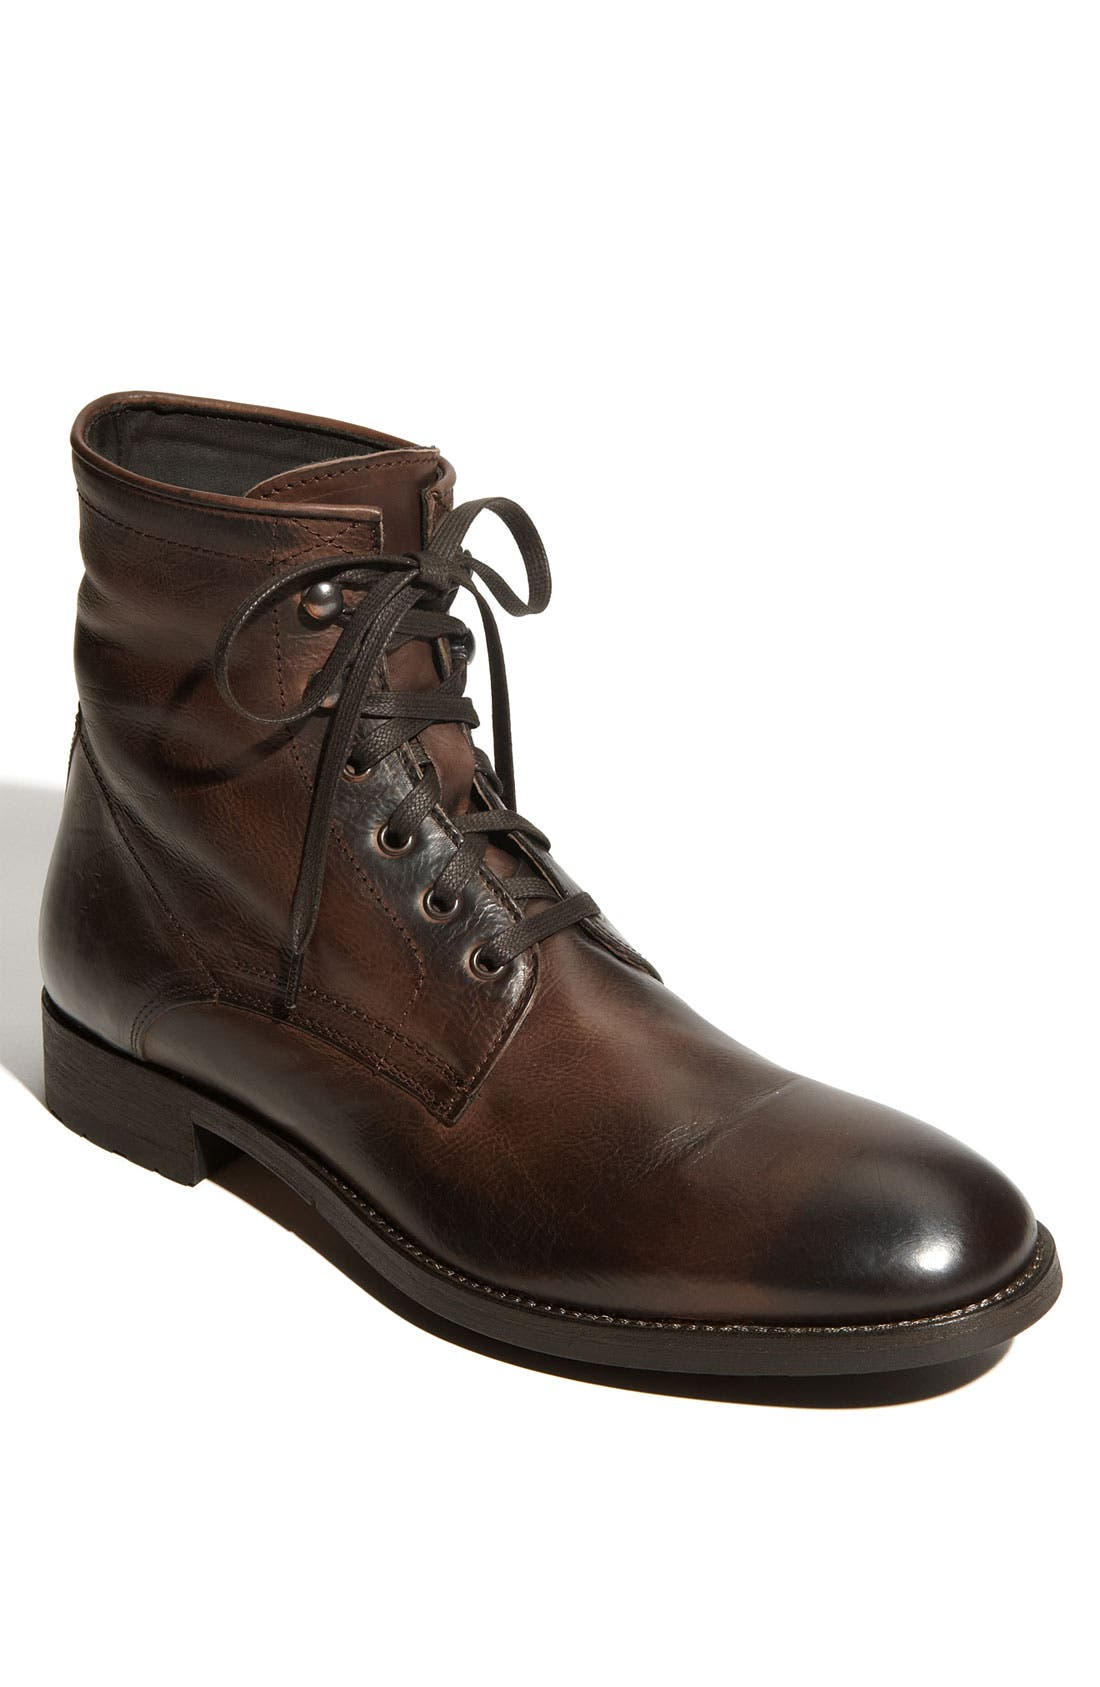 Alternate Image 1 Selected - To Boot New York 'Kilburn' Boot